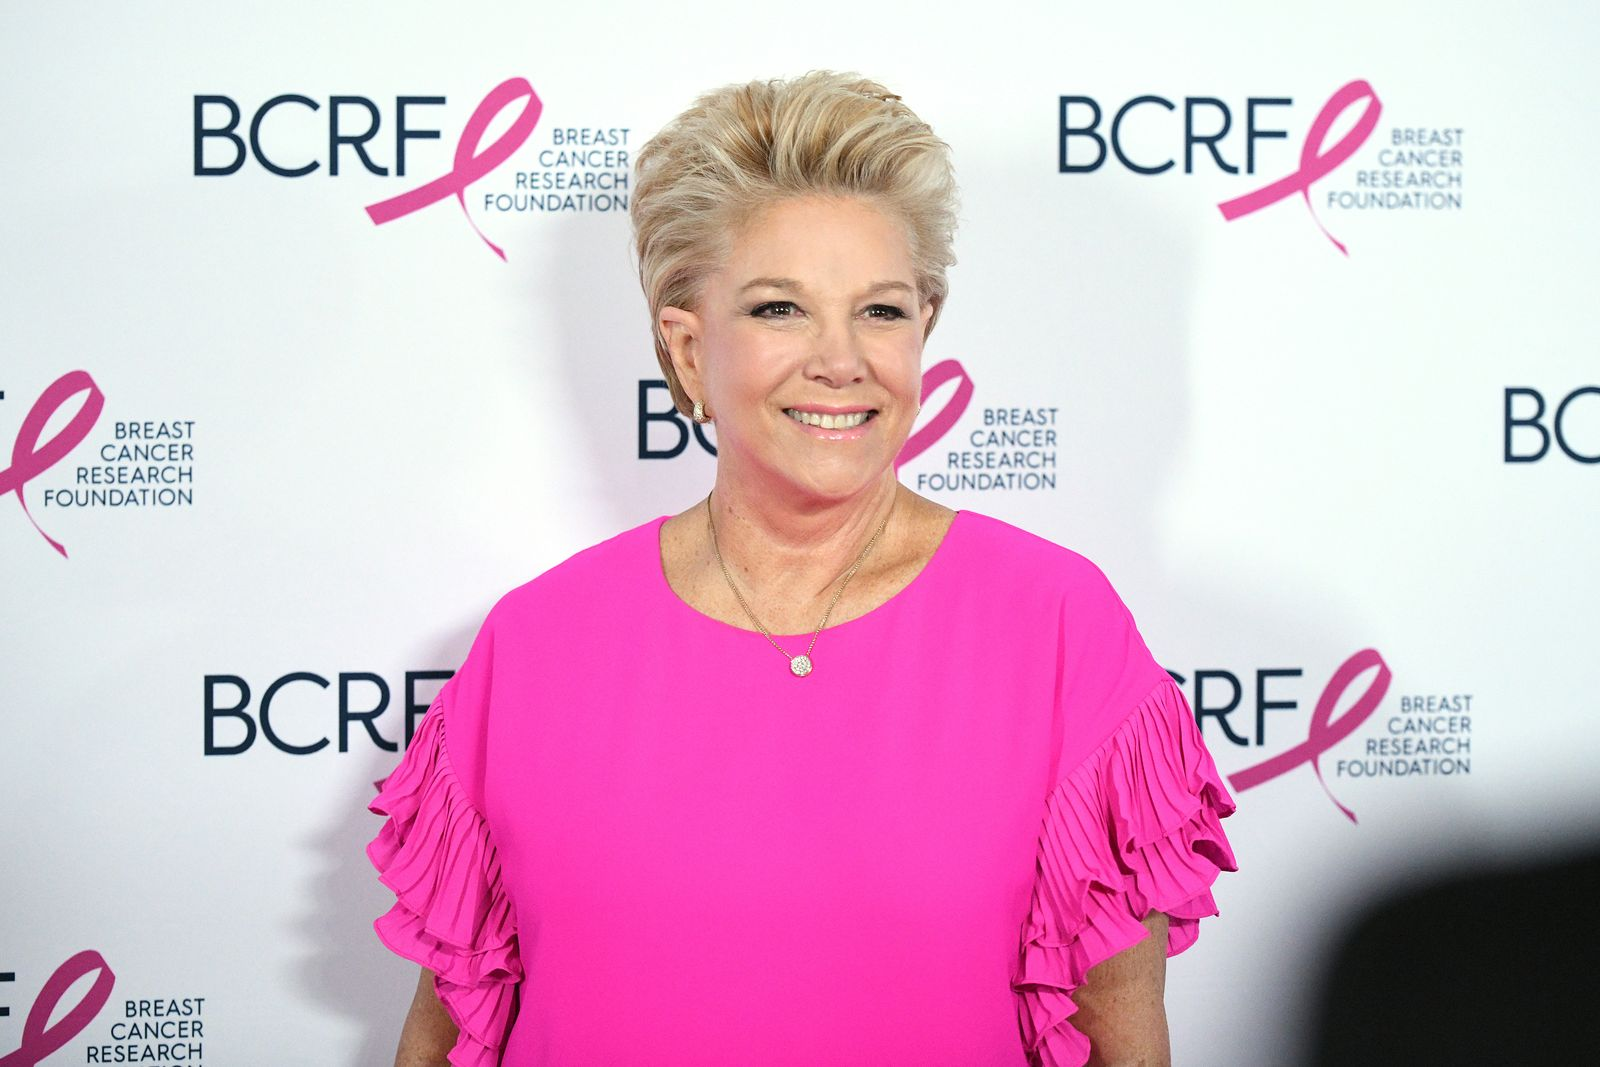 Joan Lunden at the Breast Cancer Research Foundation (BCRF) New York symposium & awards luncheon on October 17, 2019 | Photo: Getty Images